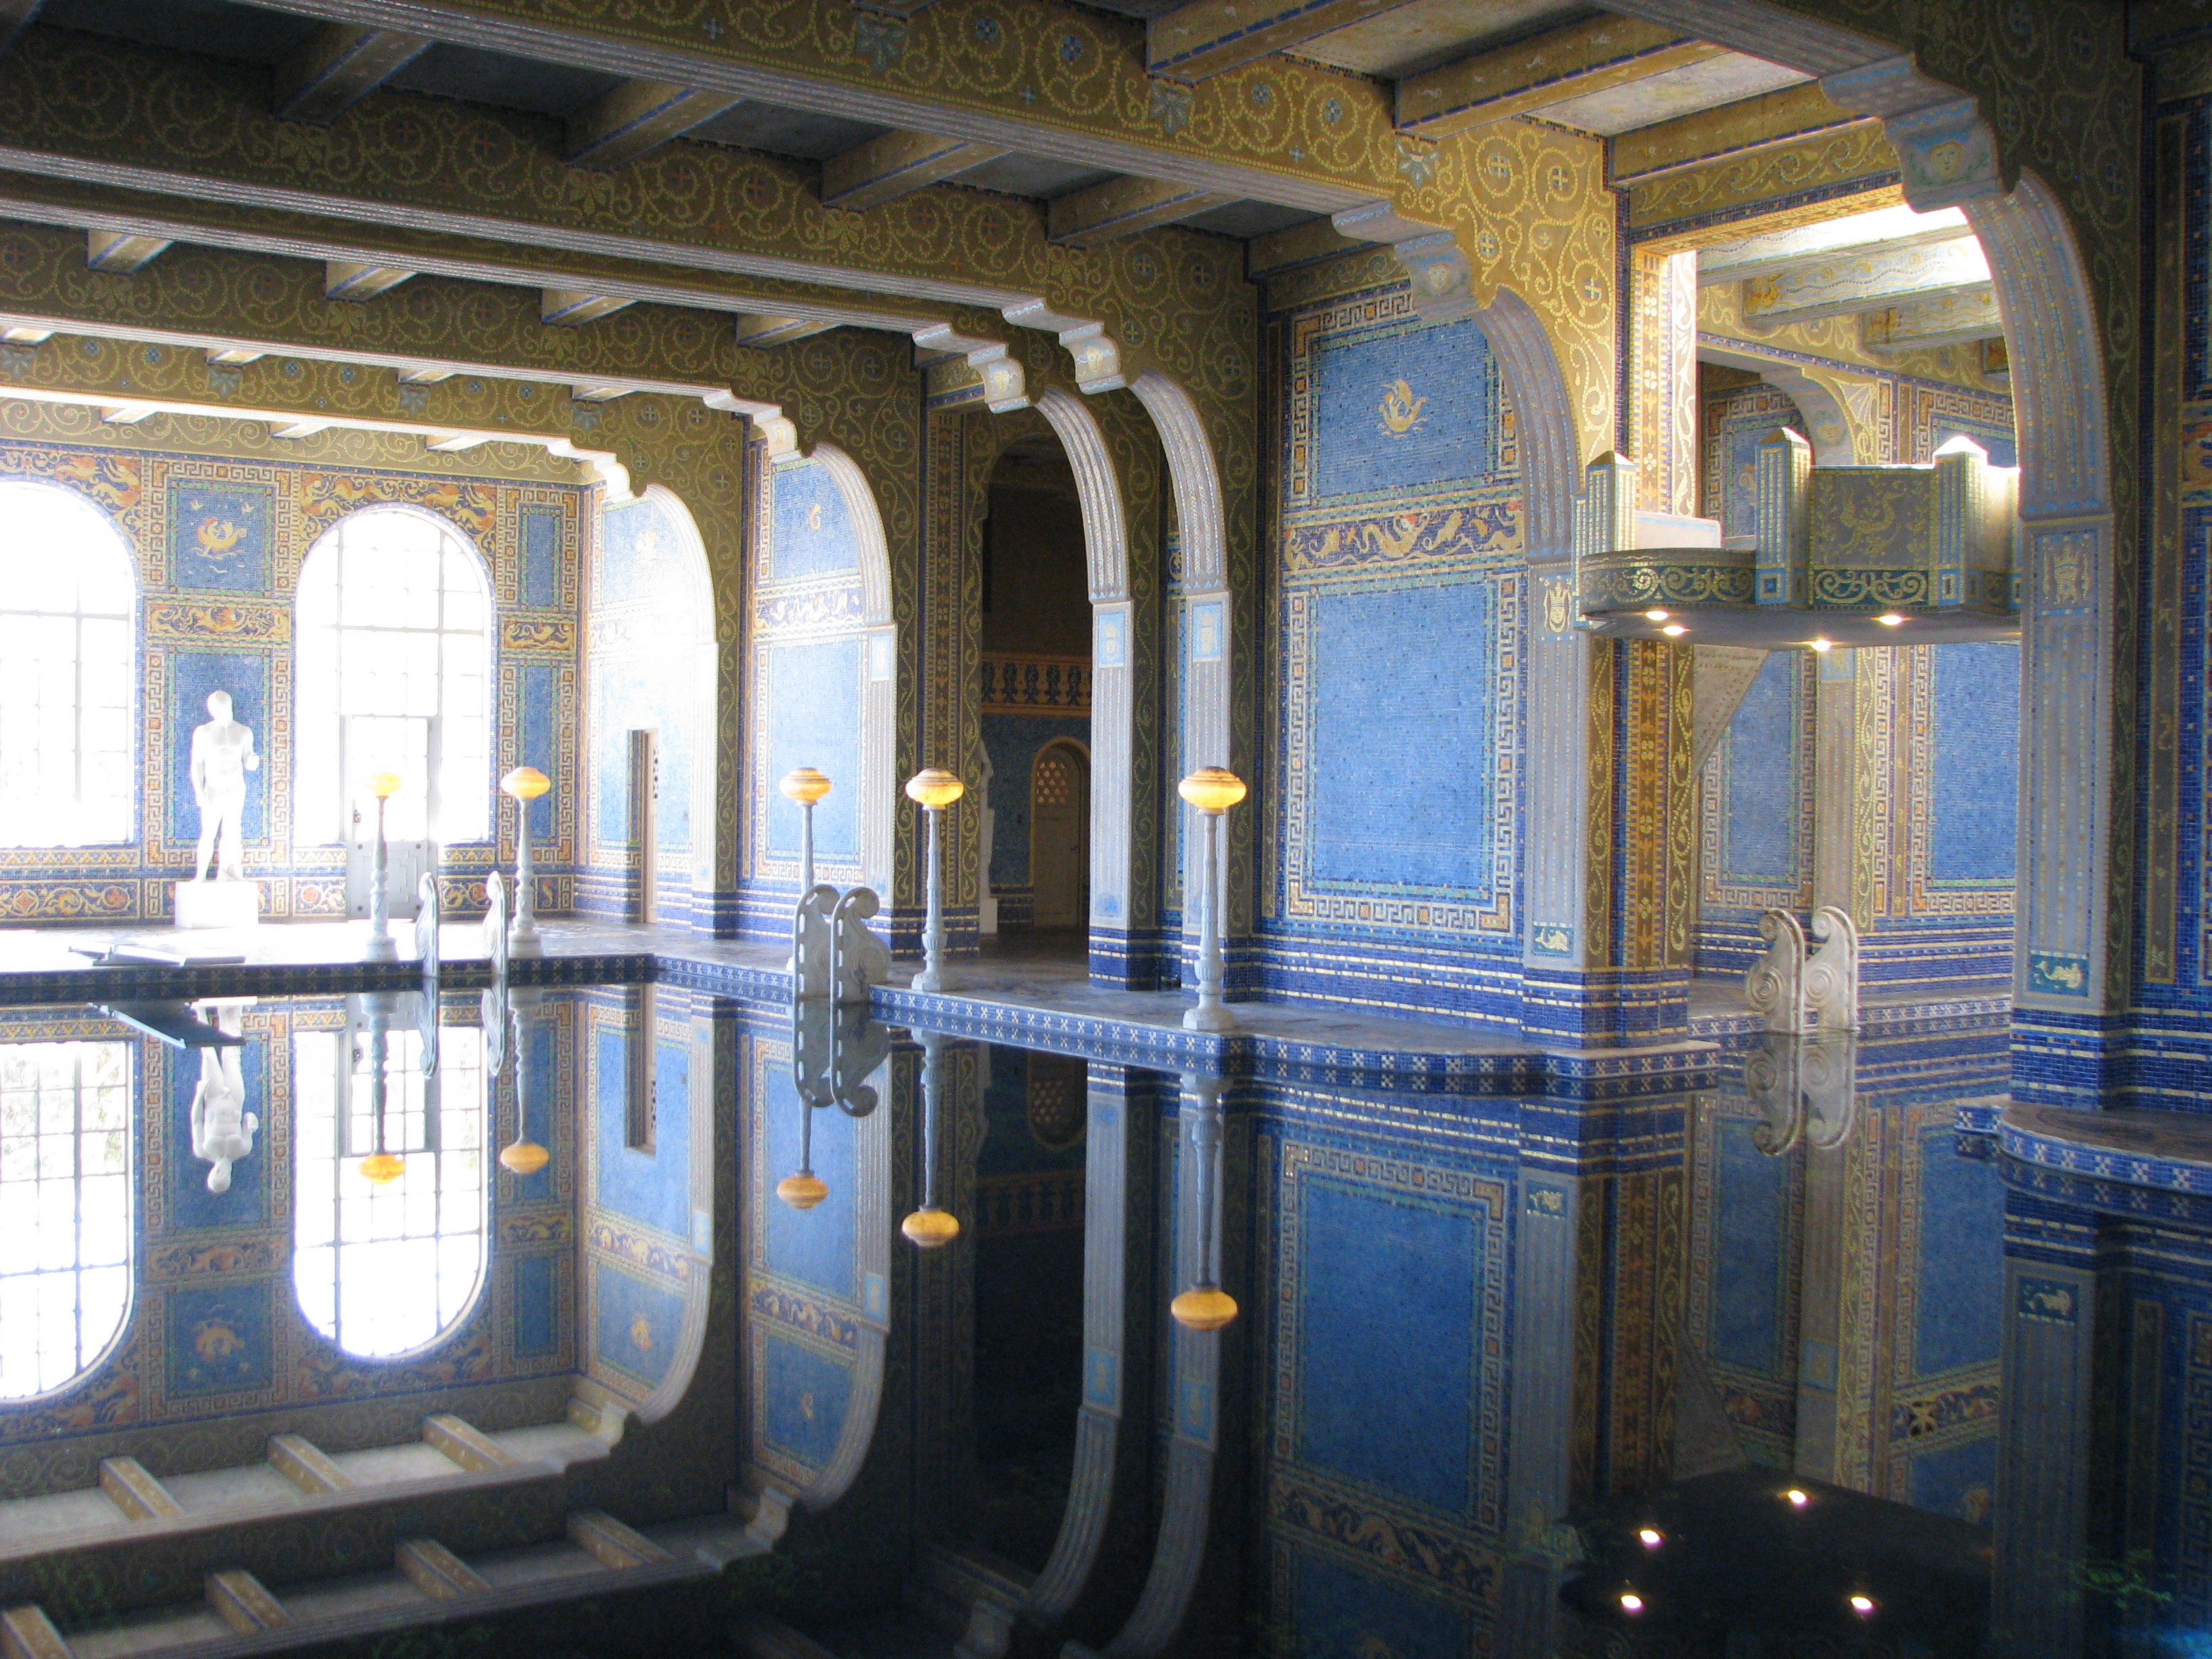 http://upload.wikimedia.org/wikipedia/commons/9/9e/Hearst_Castle_-_Indoor_pool.JPG